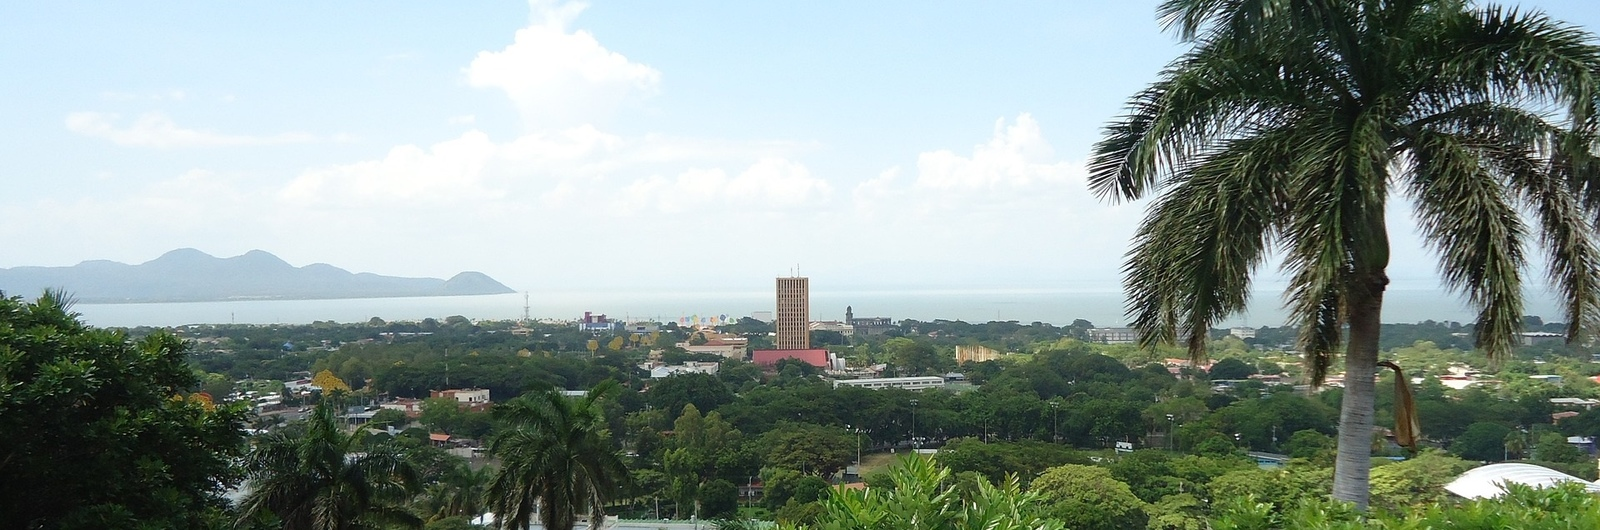 managua city header